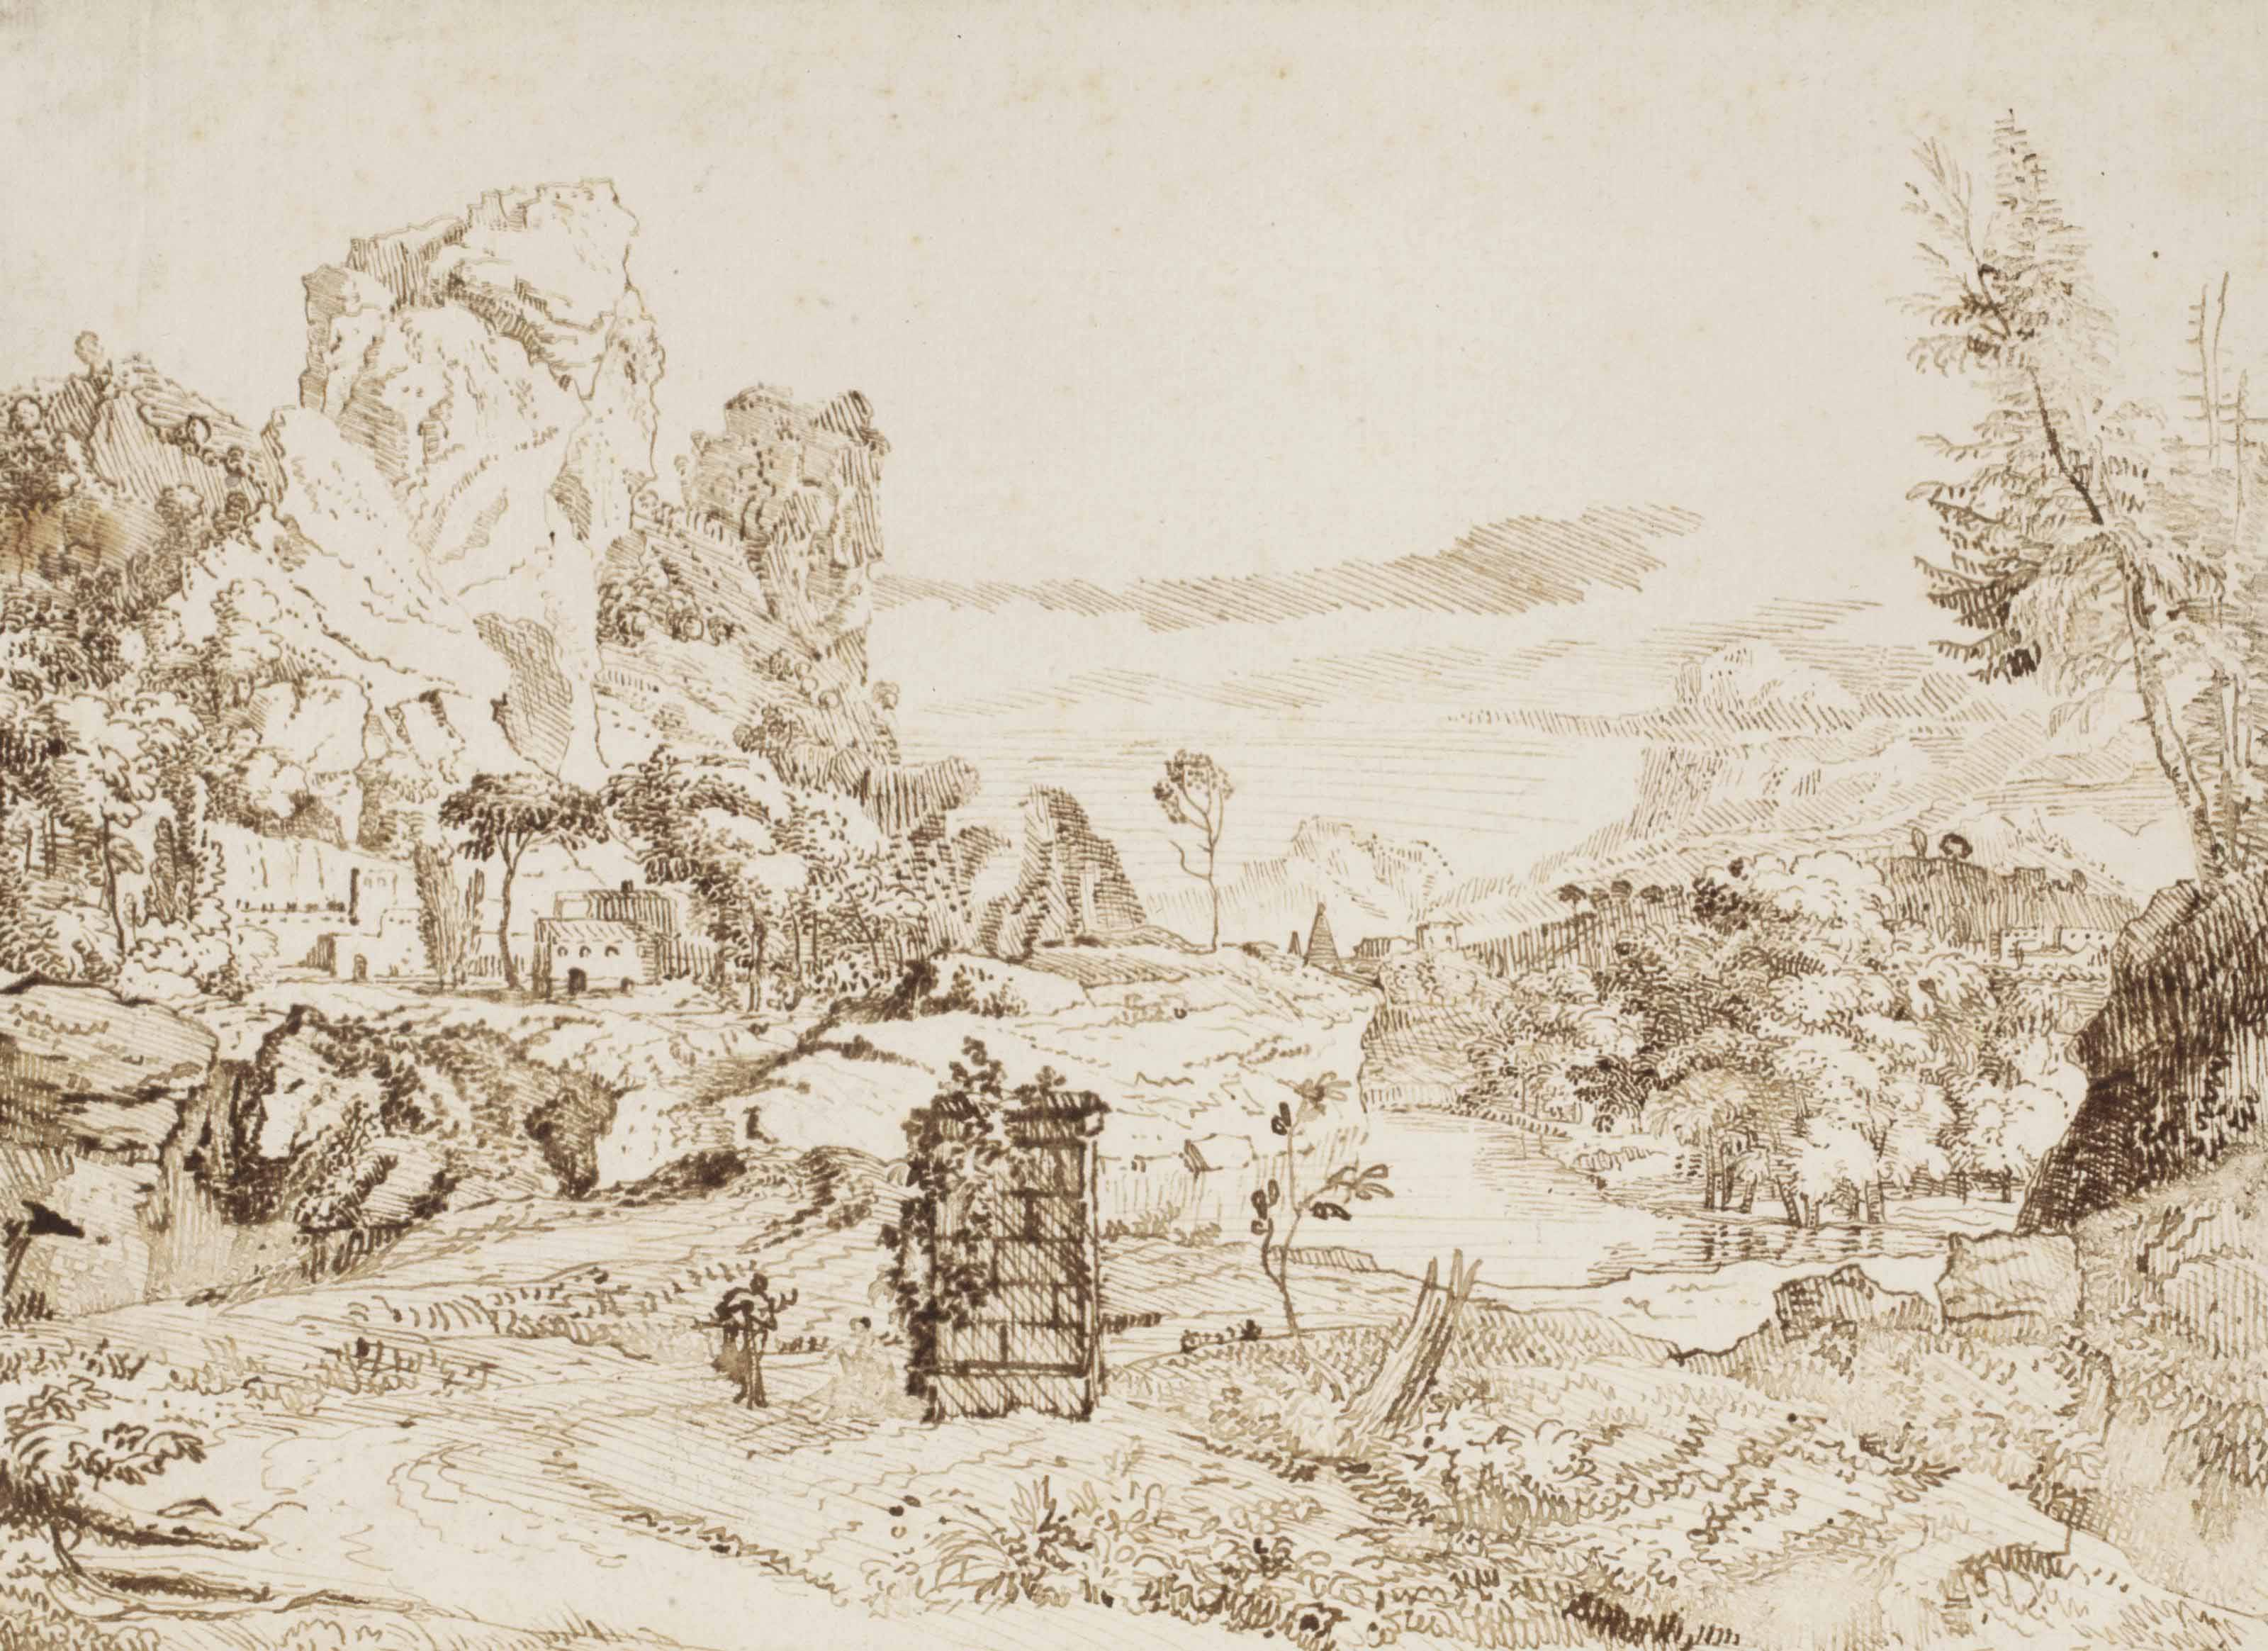 A fantasy landscape with rocks, buildings and a river passing through a valley